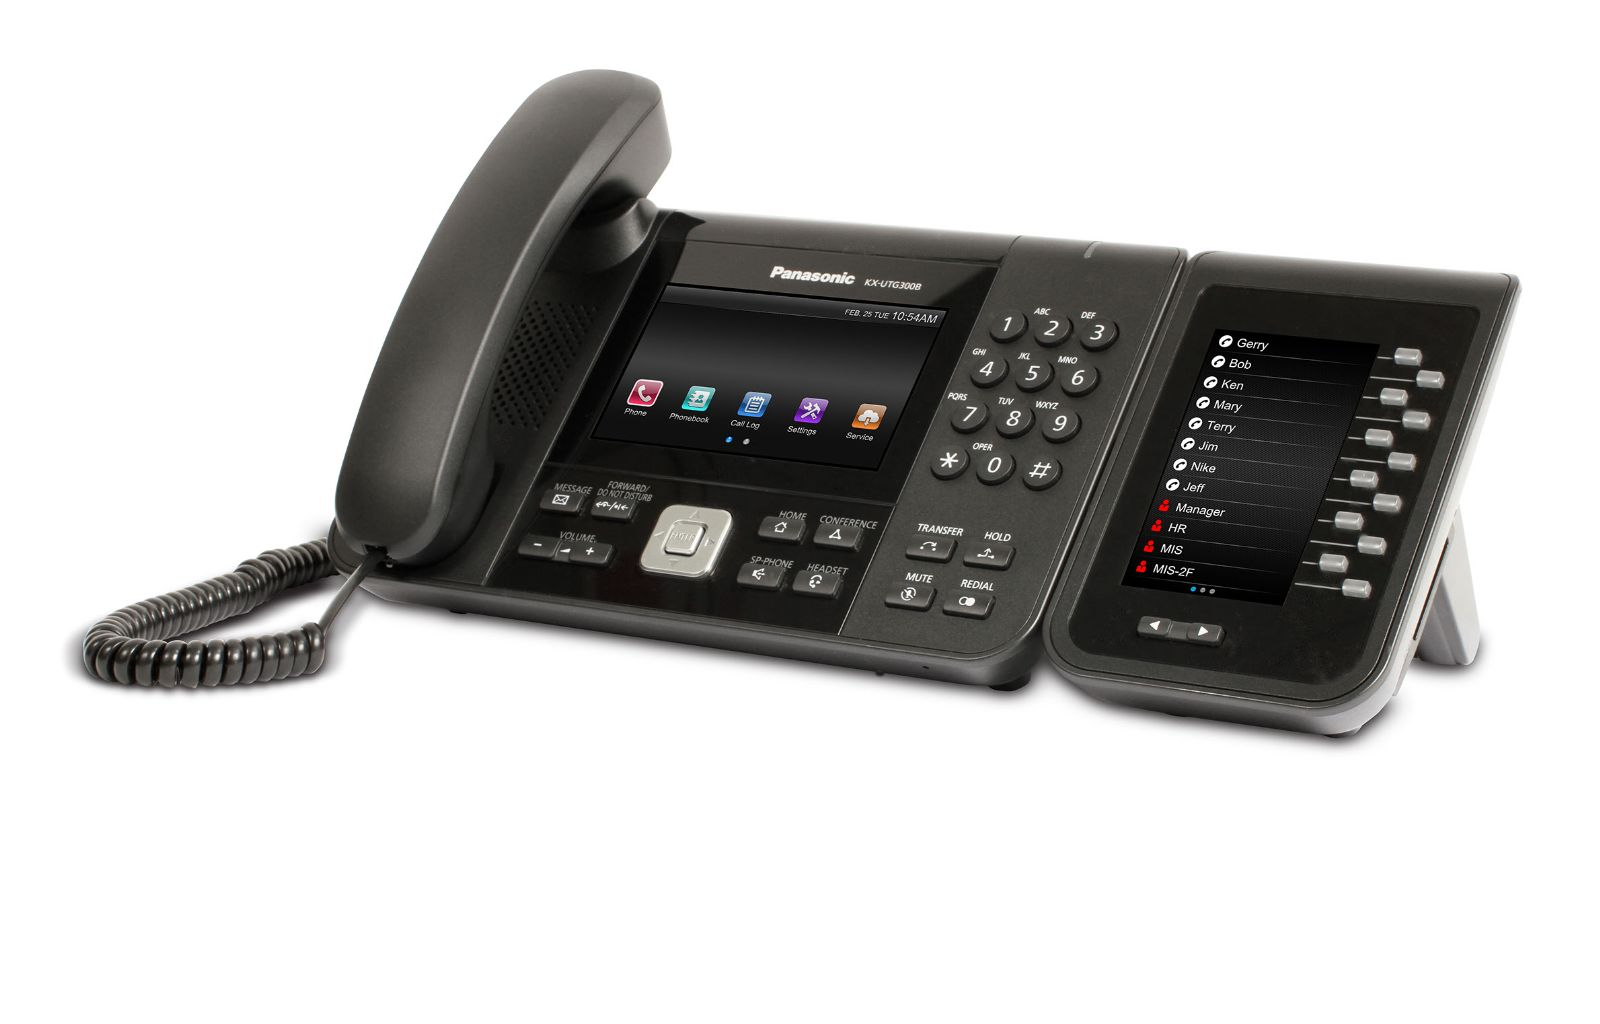 Panasonic PBX